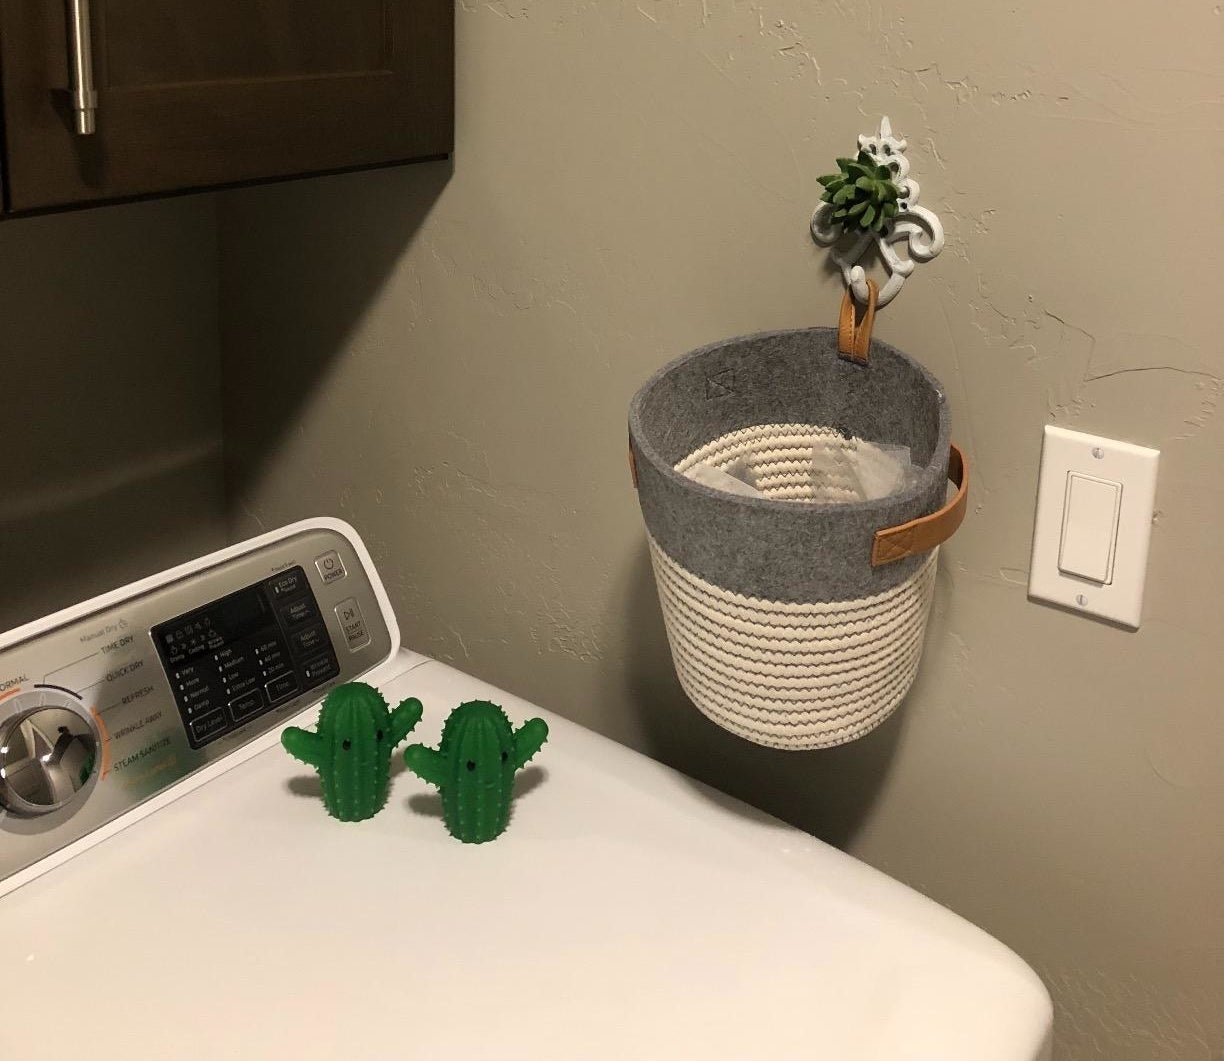 reviewer photo showing two tiny cactus dryer balls resting on top of a dryer